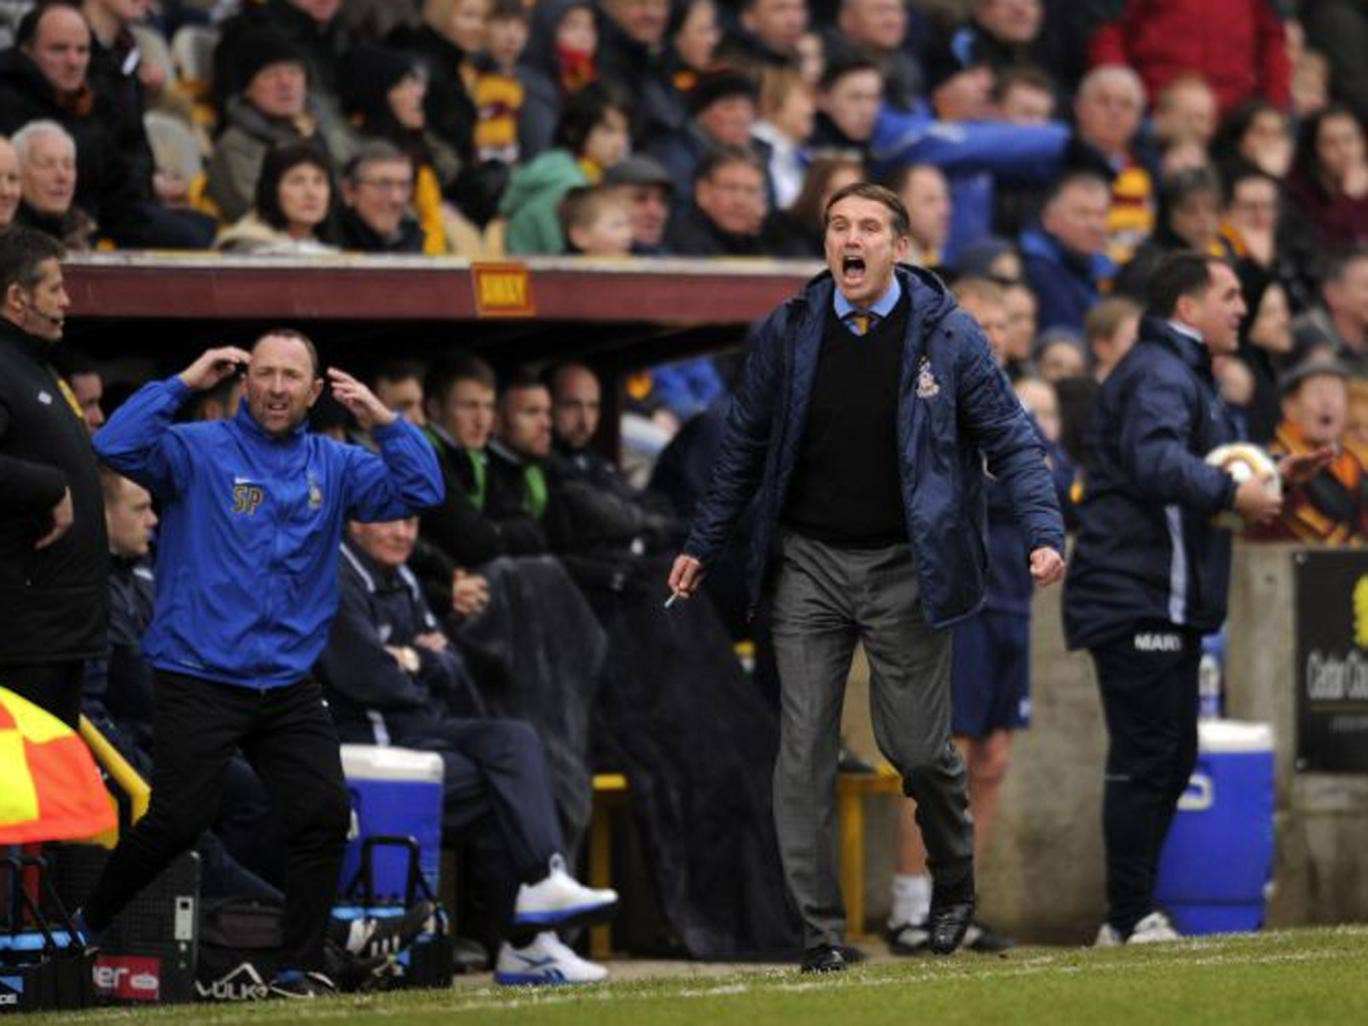 Bradford manager Parkinson says he will not have to tell his players how Swansea play ahead of the Capital One Cup final